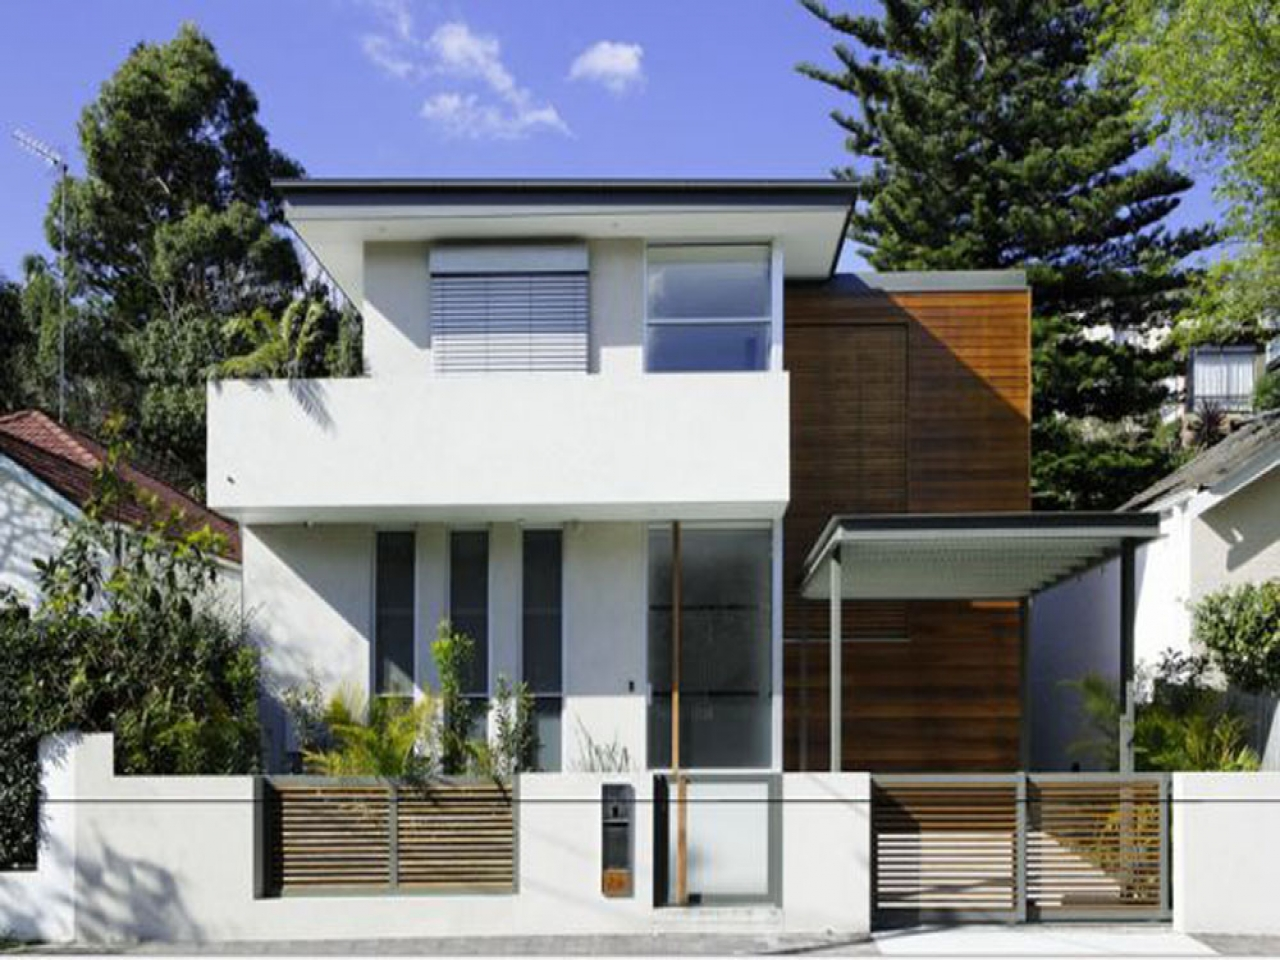 Small modern contemporary house design small modern for Contemporary house design ideas